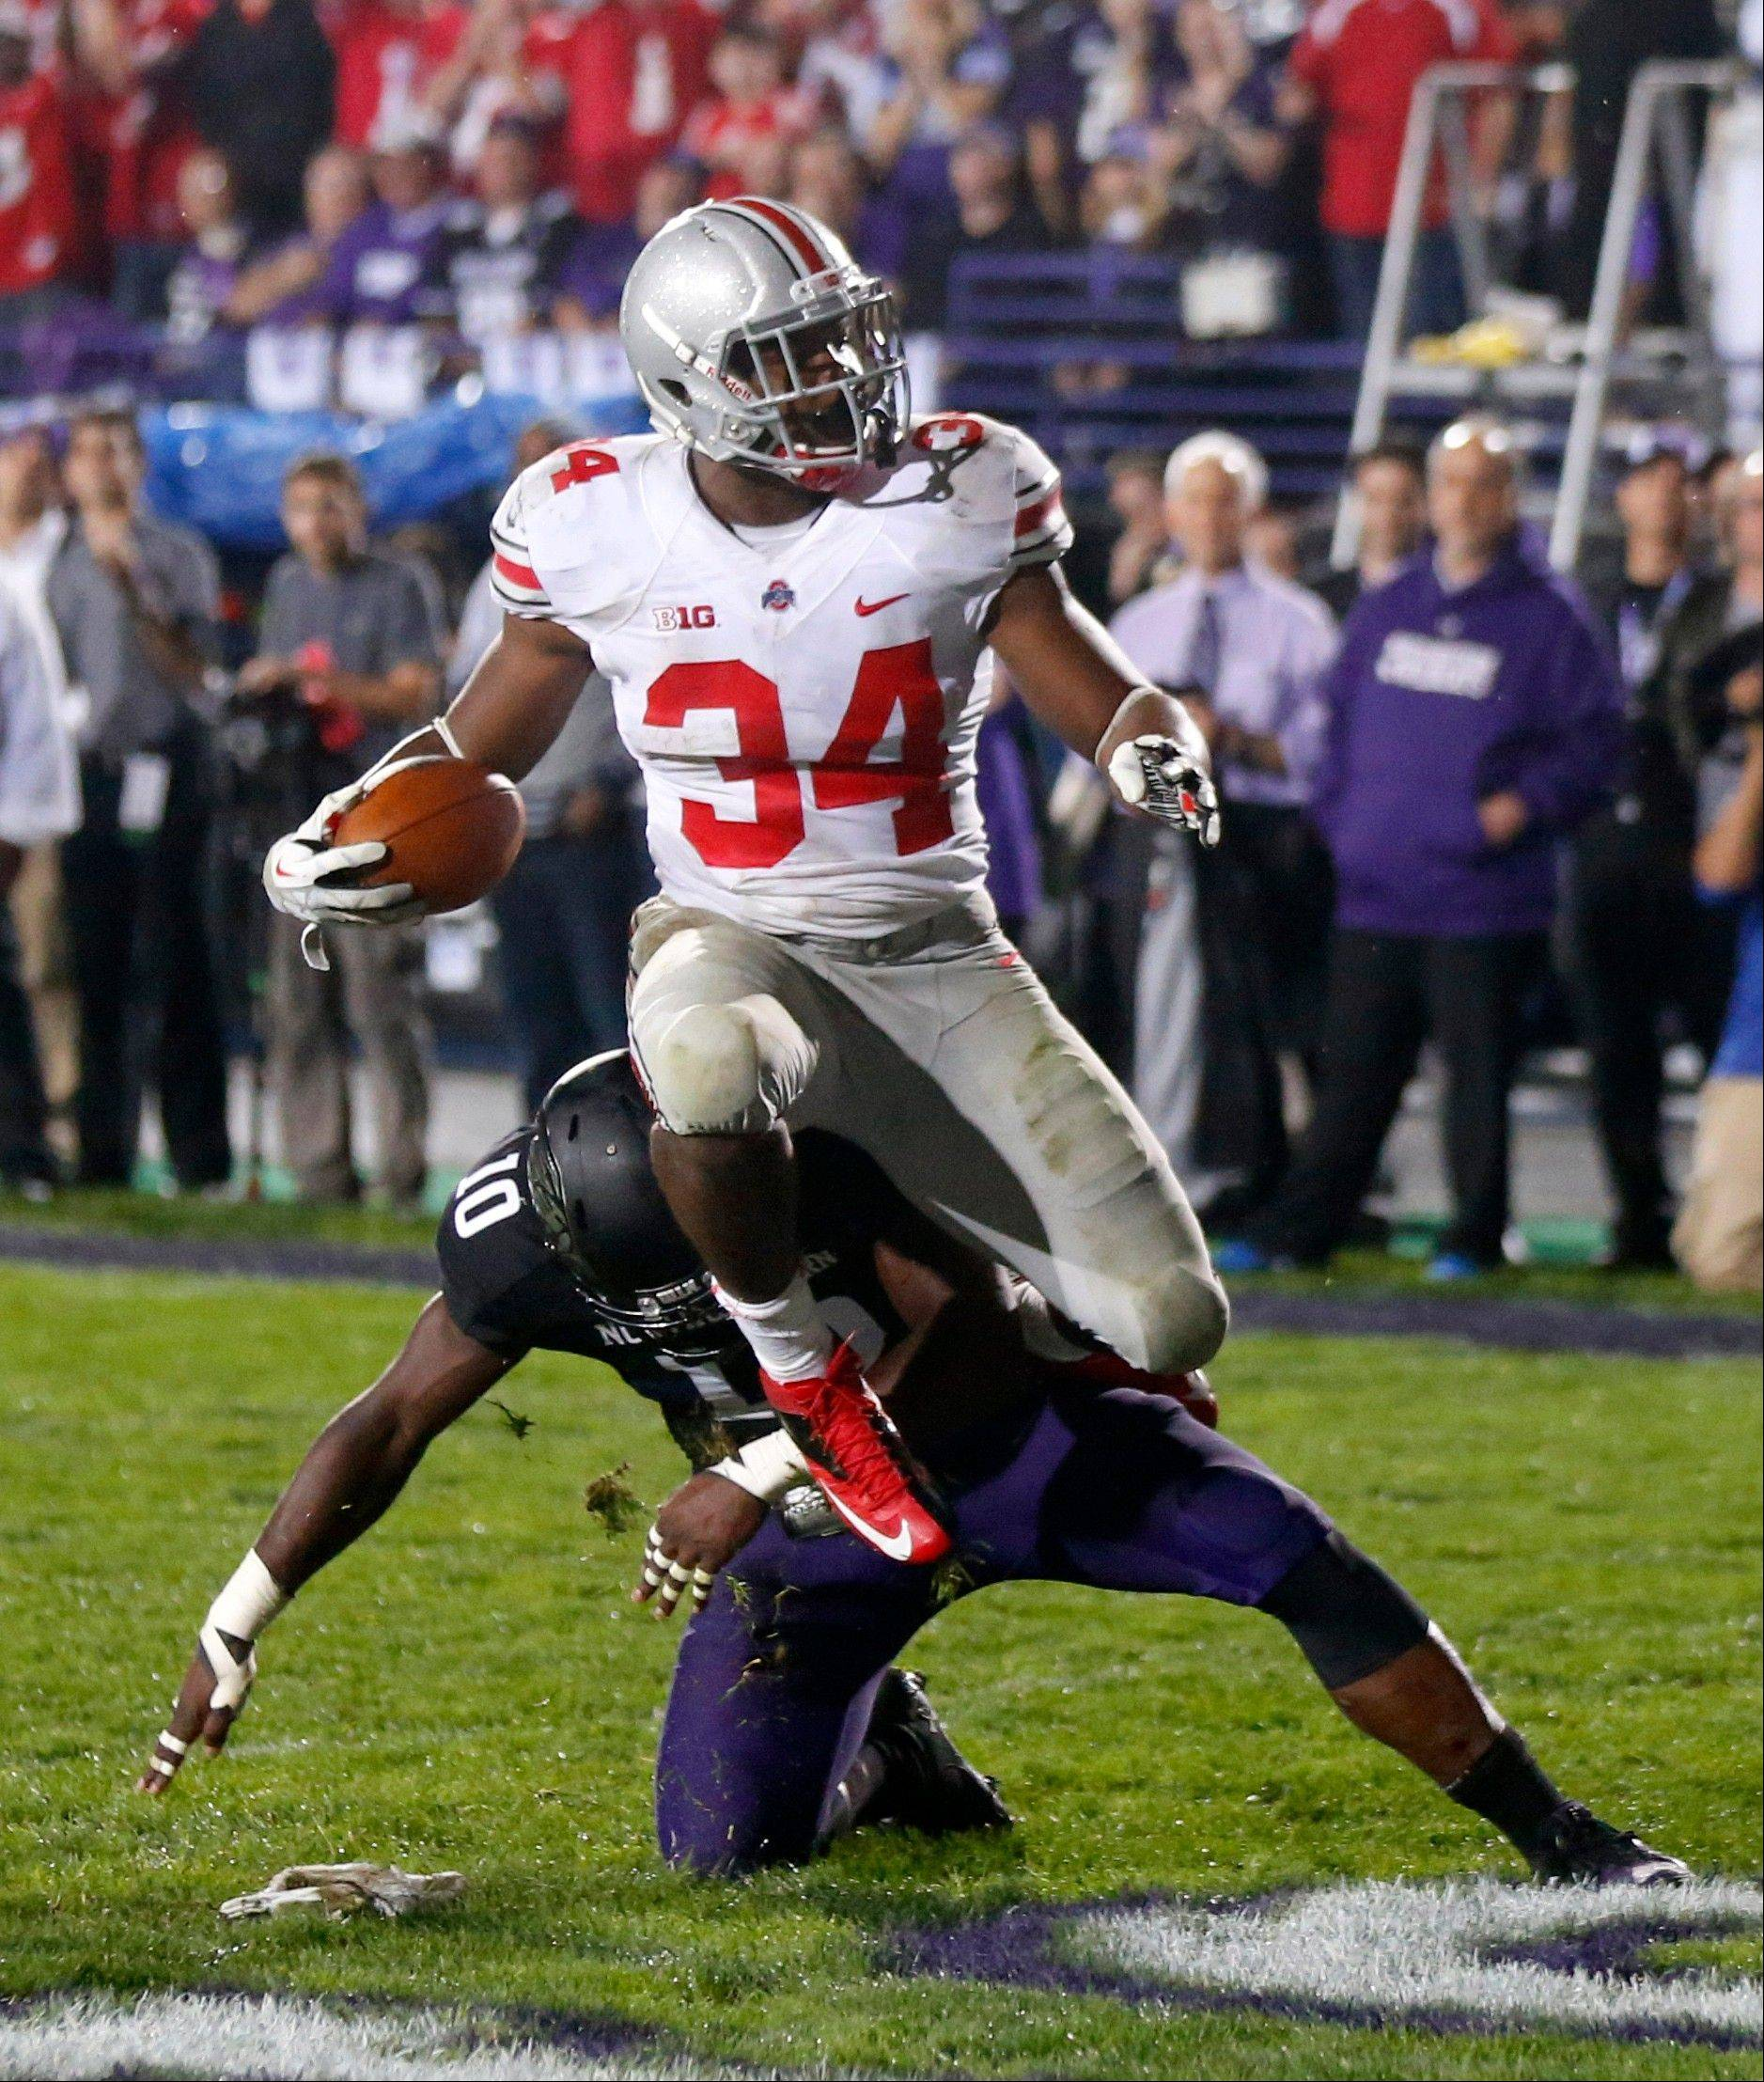 Ohio State running back Carlos Hyde scores over Northwestern safety Traveon Henry during the second half of Saturday's game in Evanston. Hyde ran for three touchdowns in a 13�-minute span of the second half.